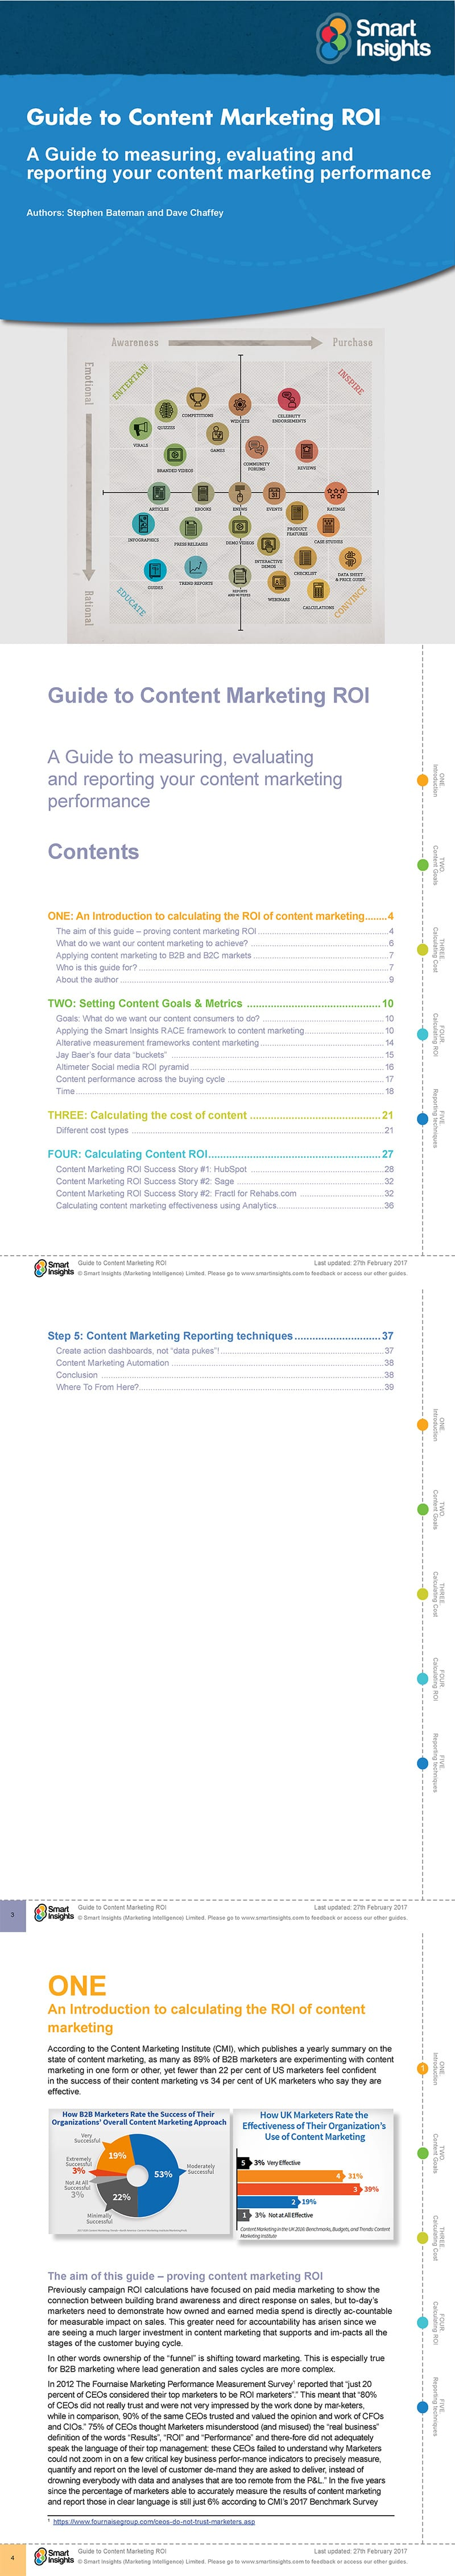 Evaluating Content Marketing ROI Guide